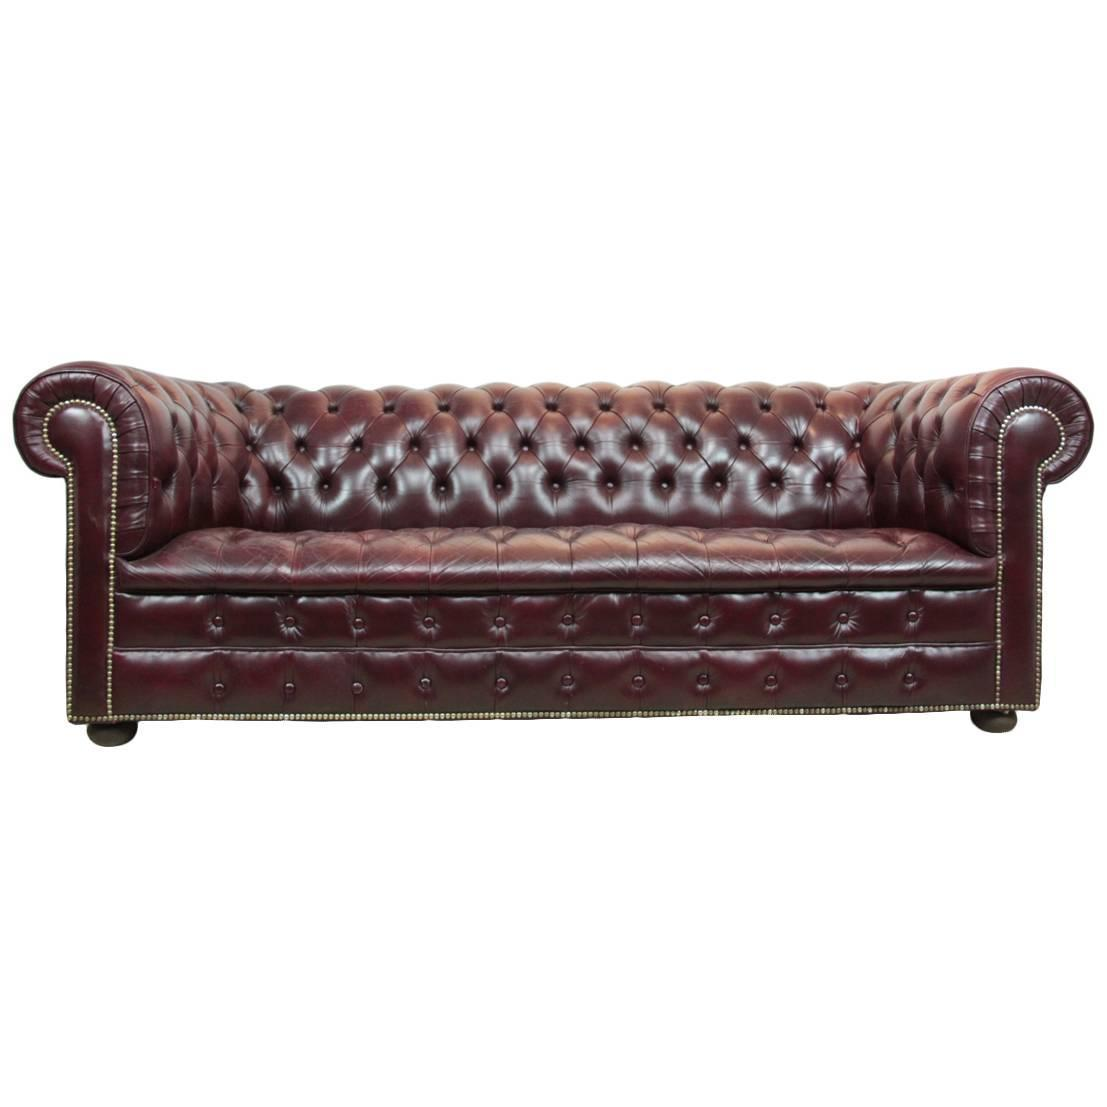 Vintage Black Leather Chesterfield Sofa: Vintage Leather Chesterfield Sofa In Red At 1stdibs